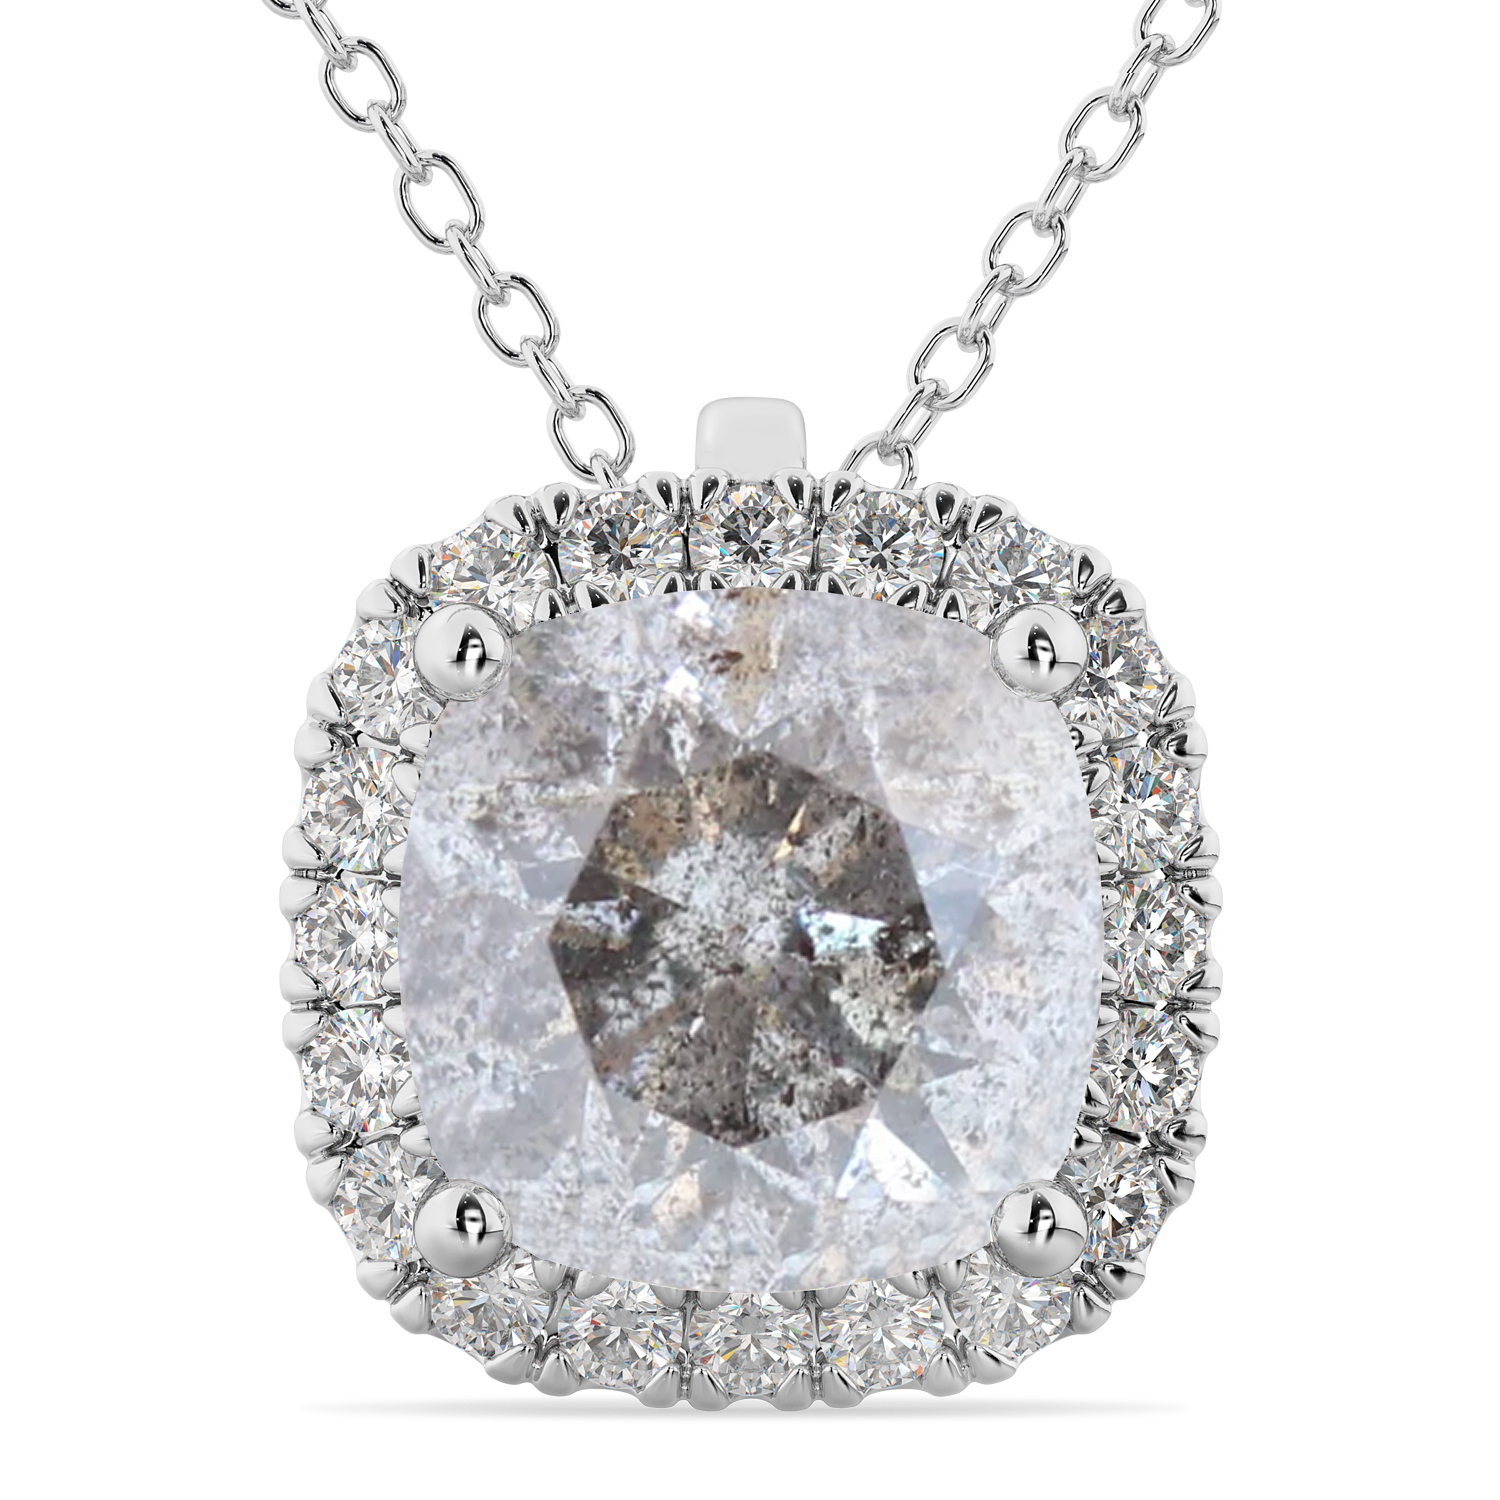 Halo Cushion Cut Salt & Pepper Diamond Necklace 14k White Gold (2.27ct)